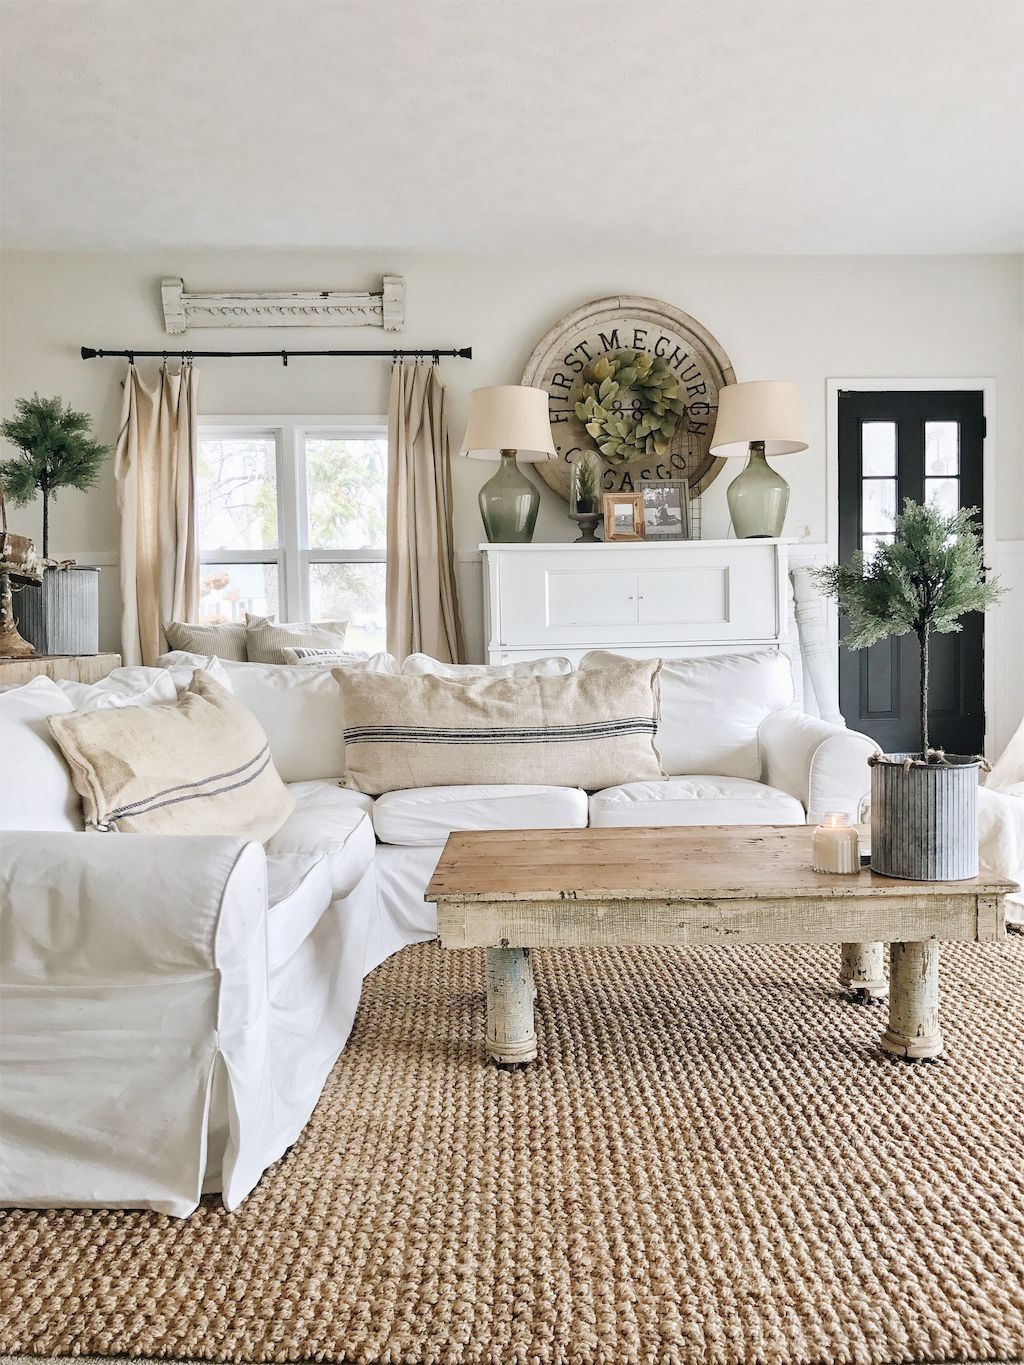 Awesome 99 Cute Shabby Chic Farmhouse Living Room Decor Ideas. More ...